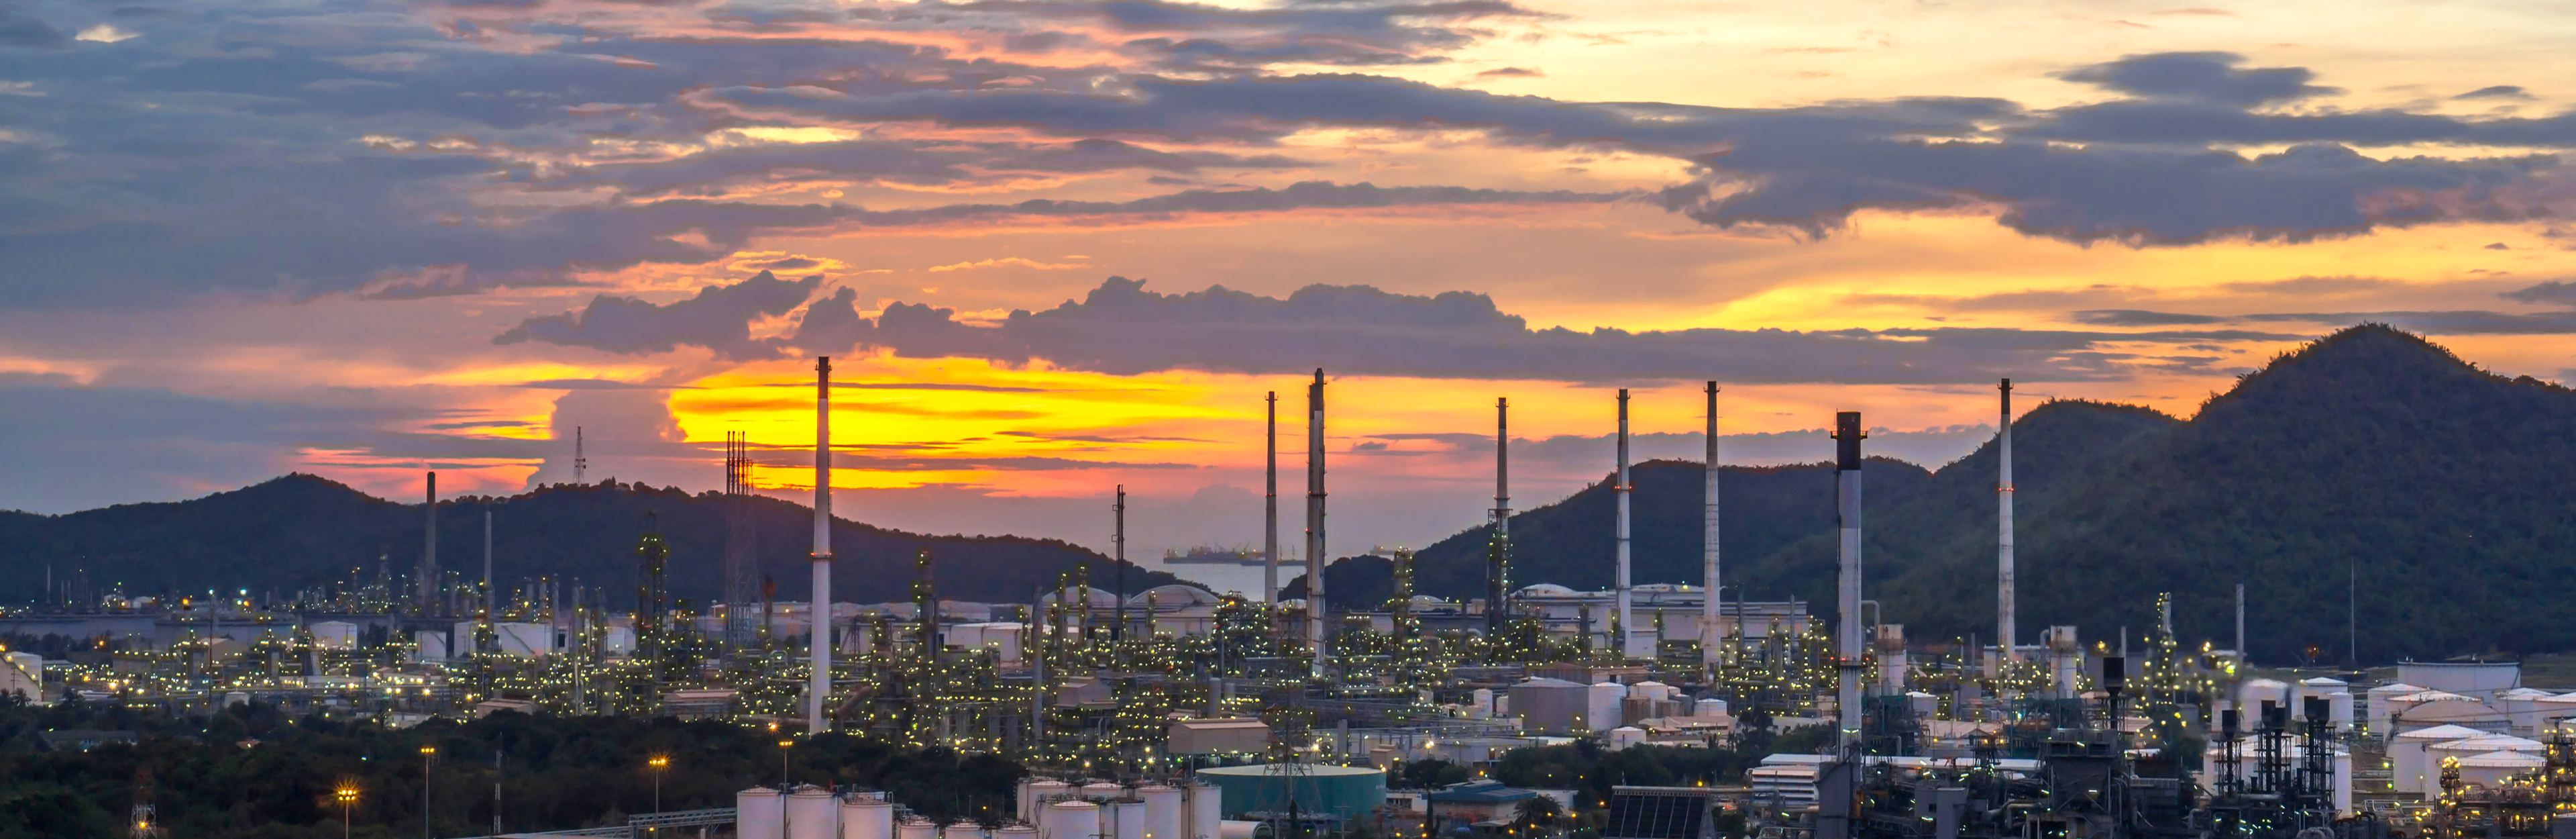 BHC3.ai for Predictive Maintenance - oil refinery sunset